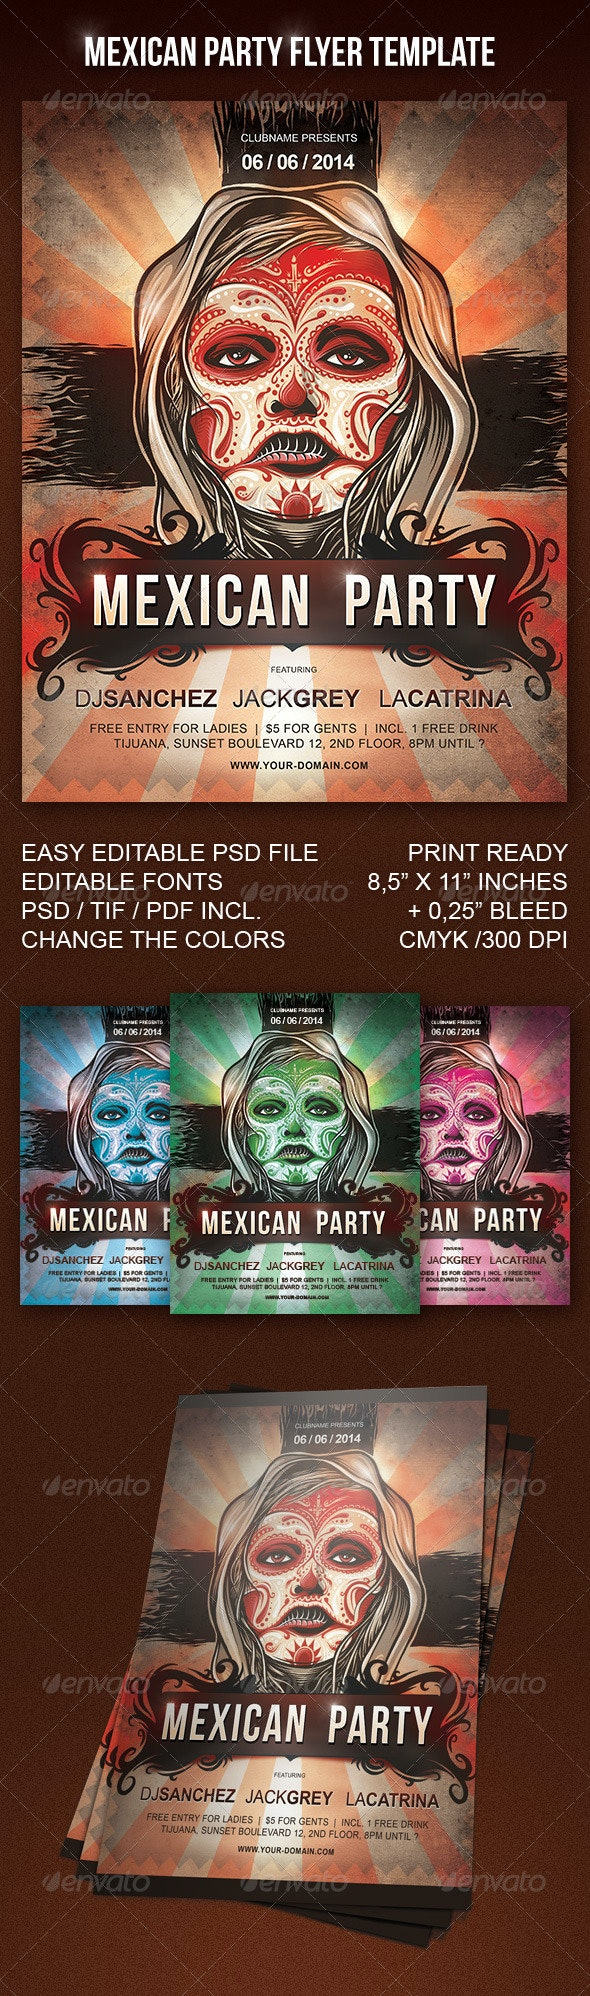 Mexican Party Flyer - Miscellaneous Events